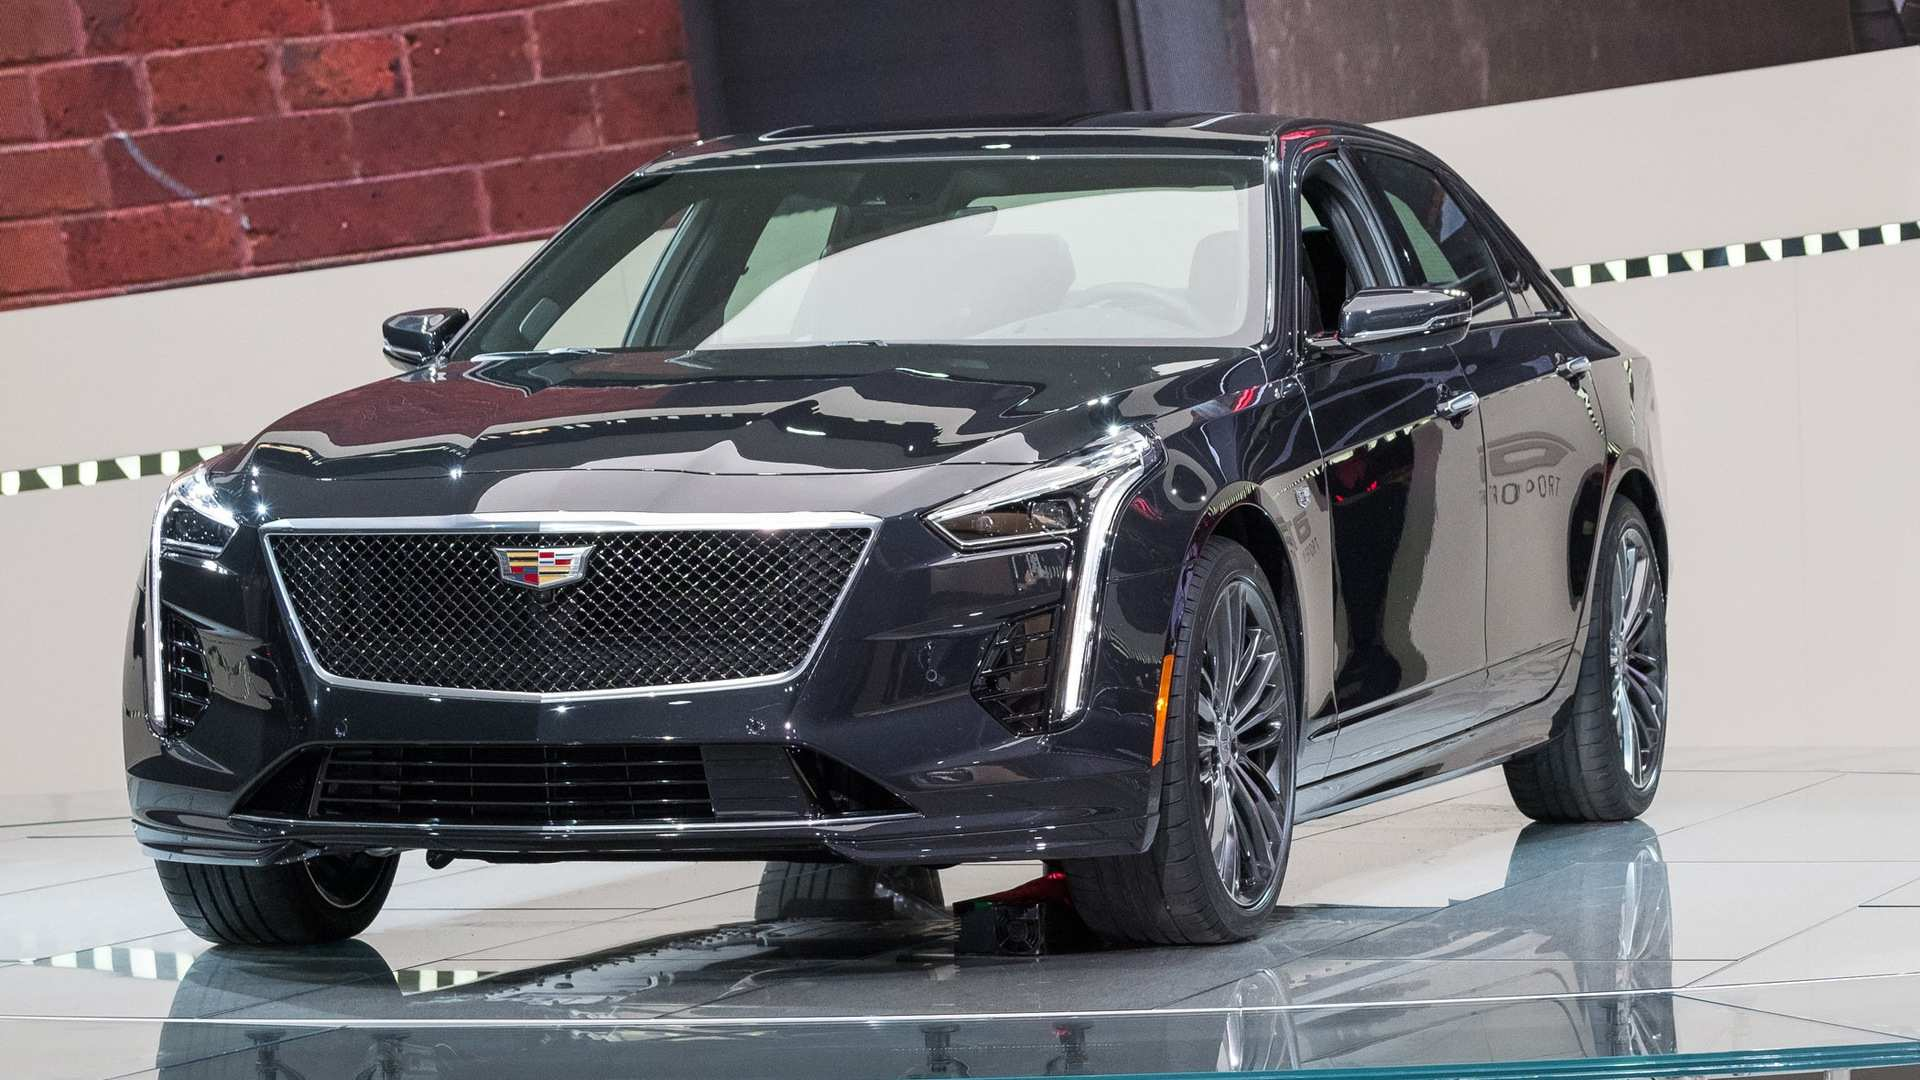 61 A 2020 Cadillac Ct6 V Pricing